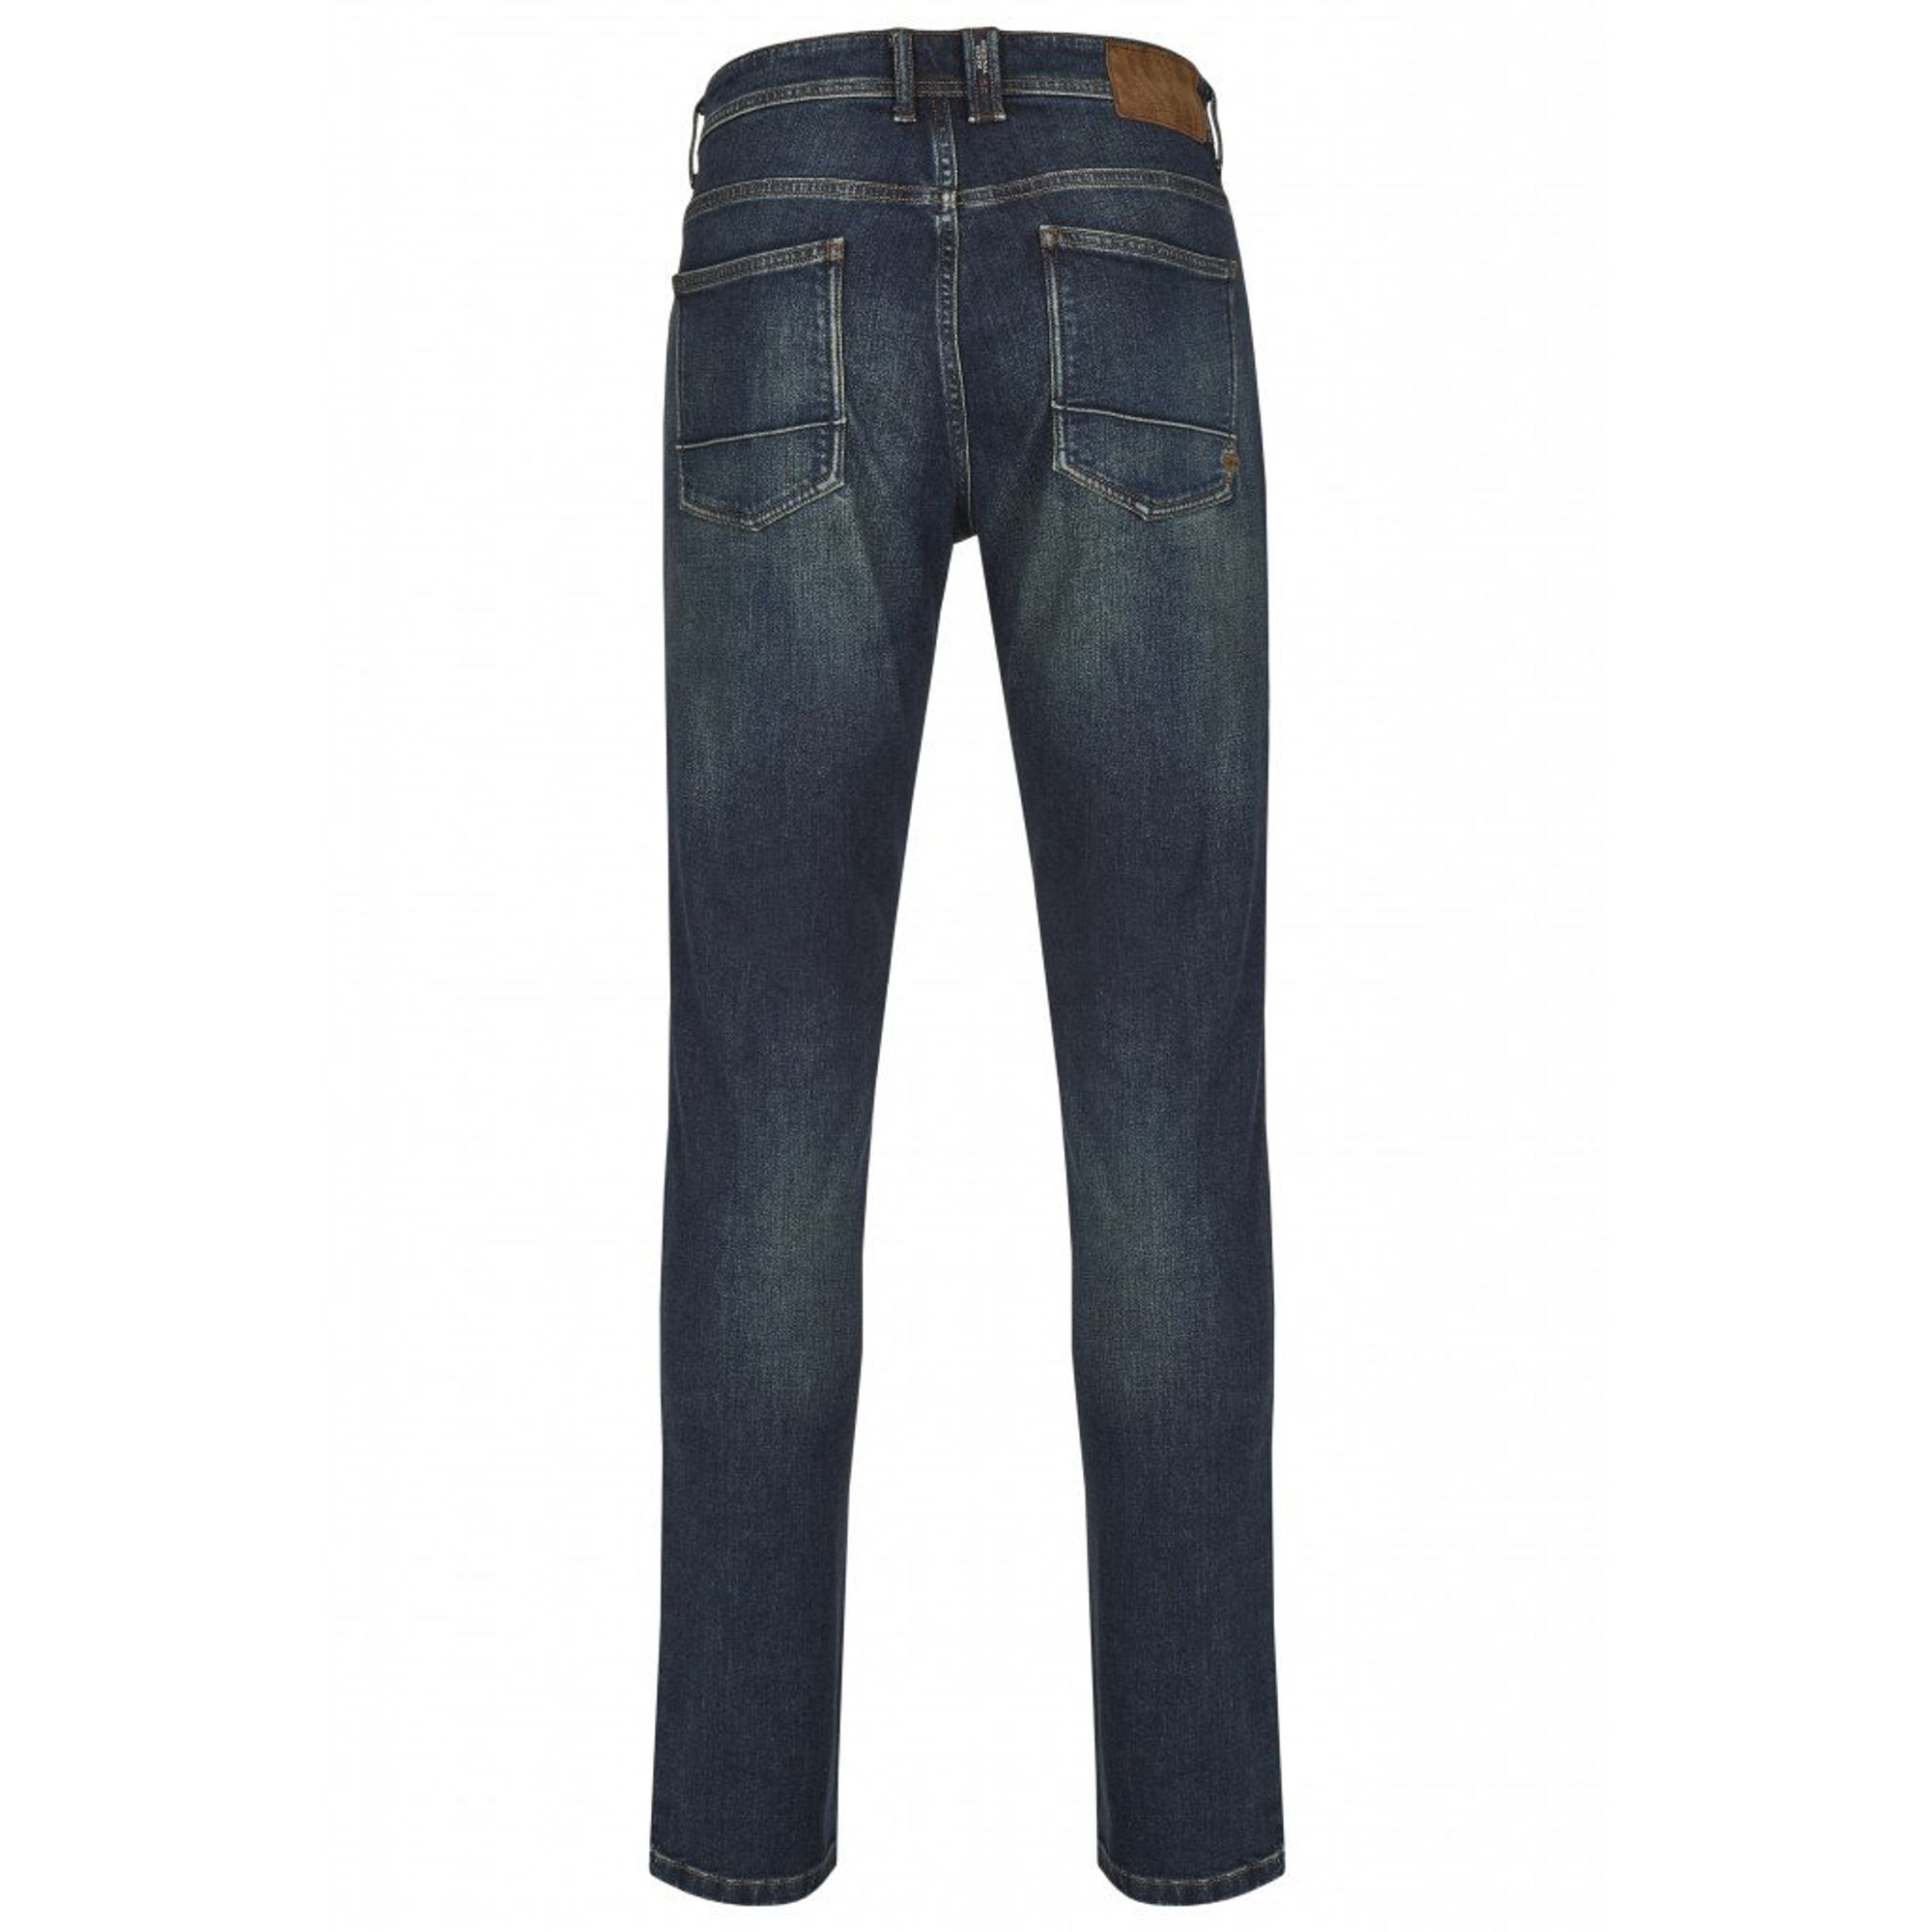 Camel Active Herren Jeans 5 Pocket Houston (488605 9829)